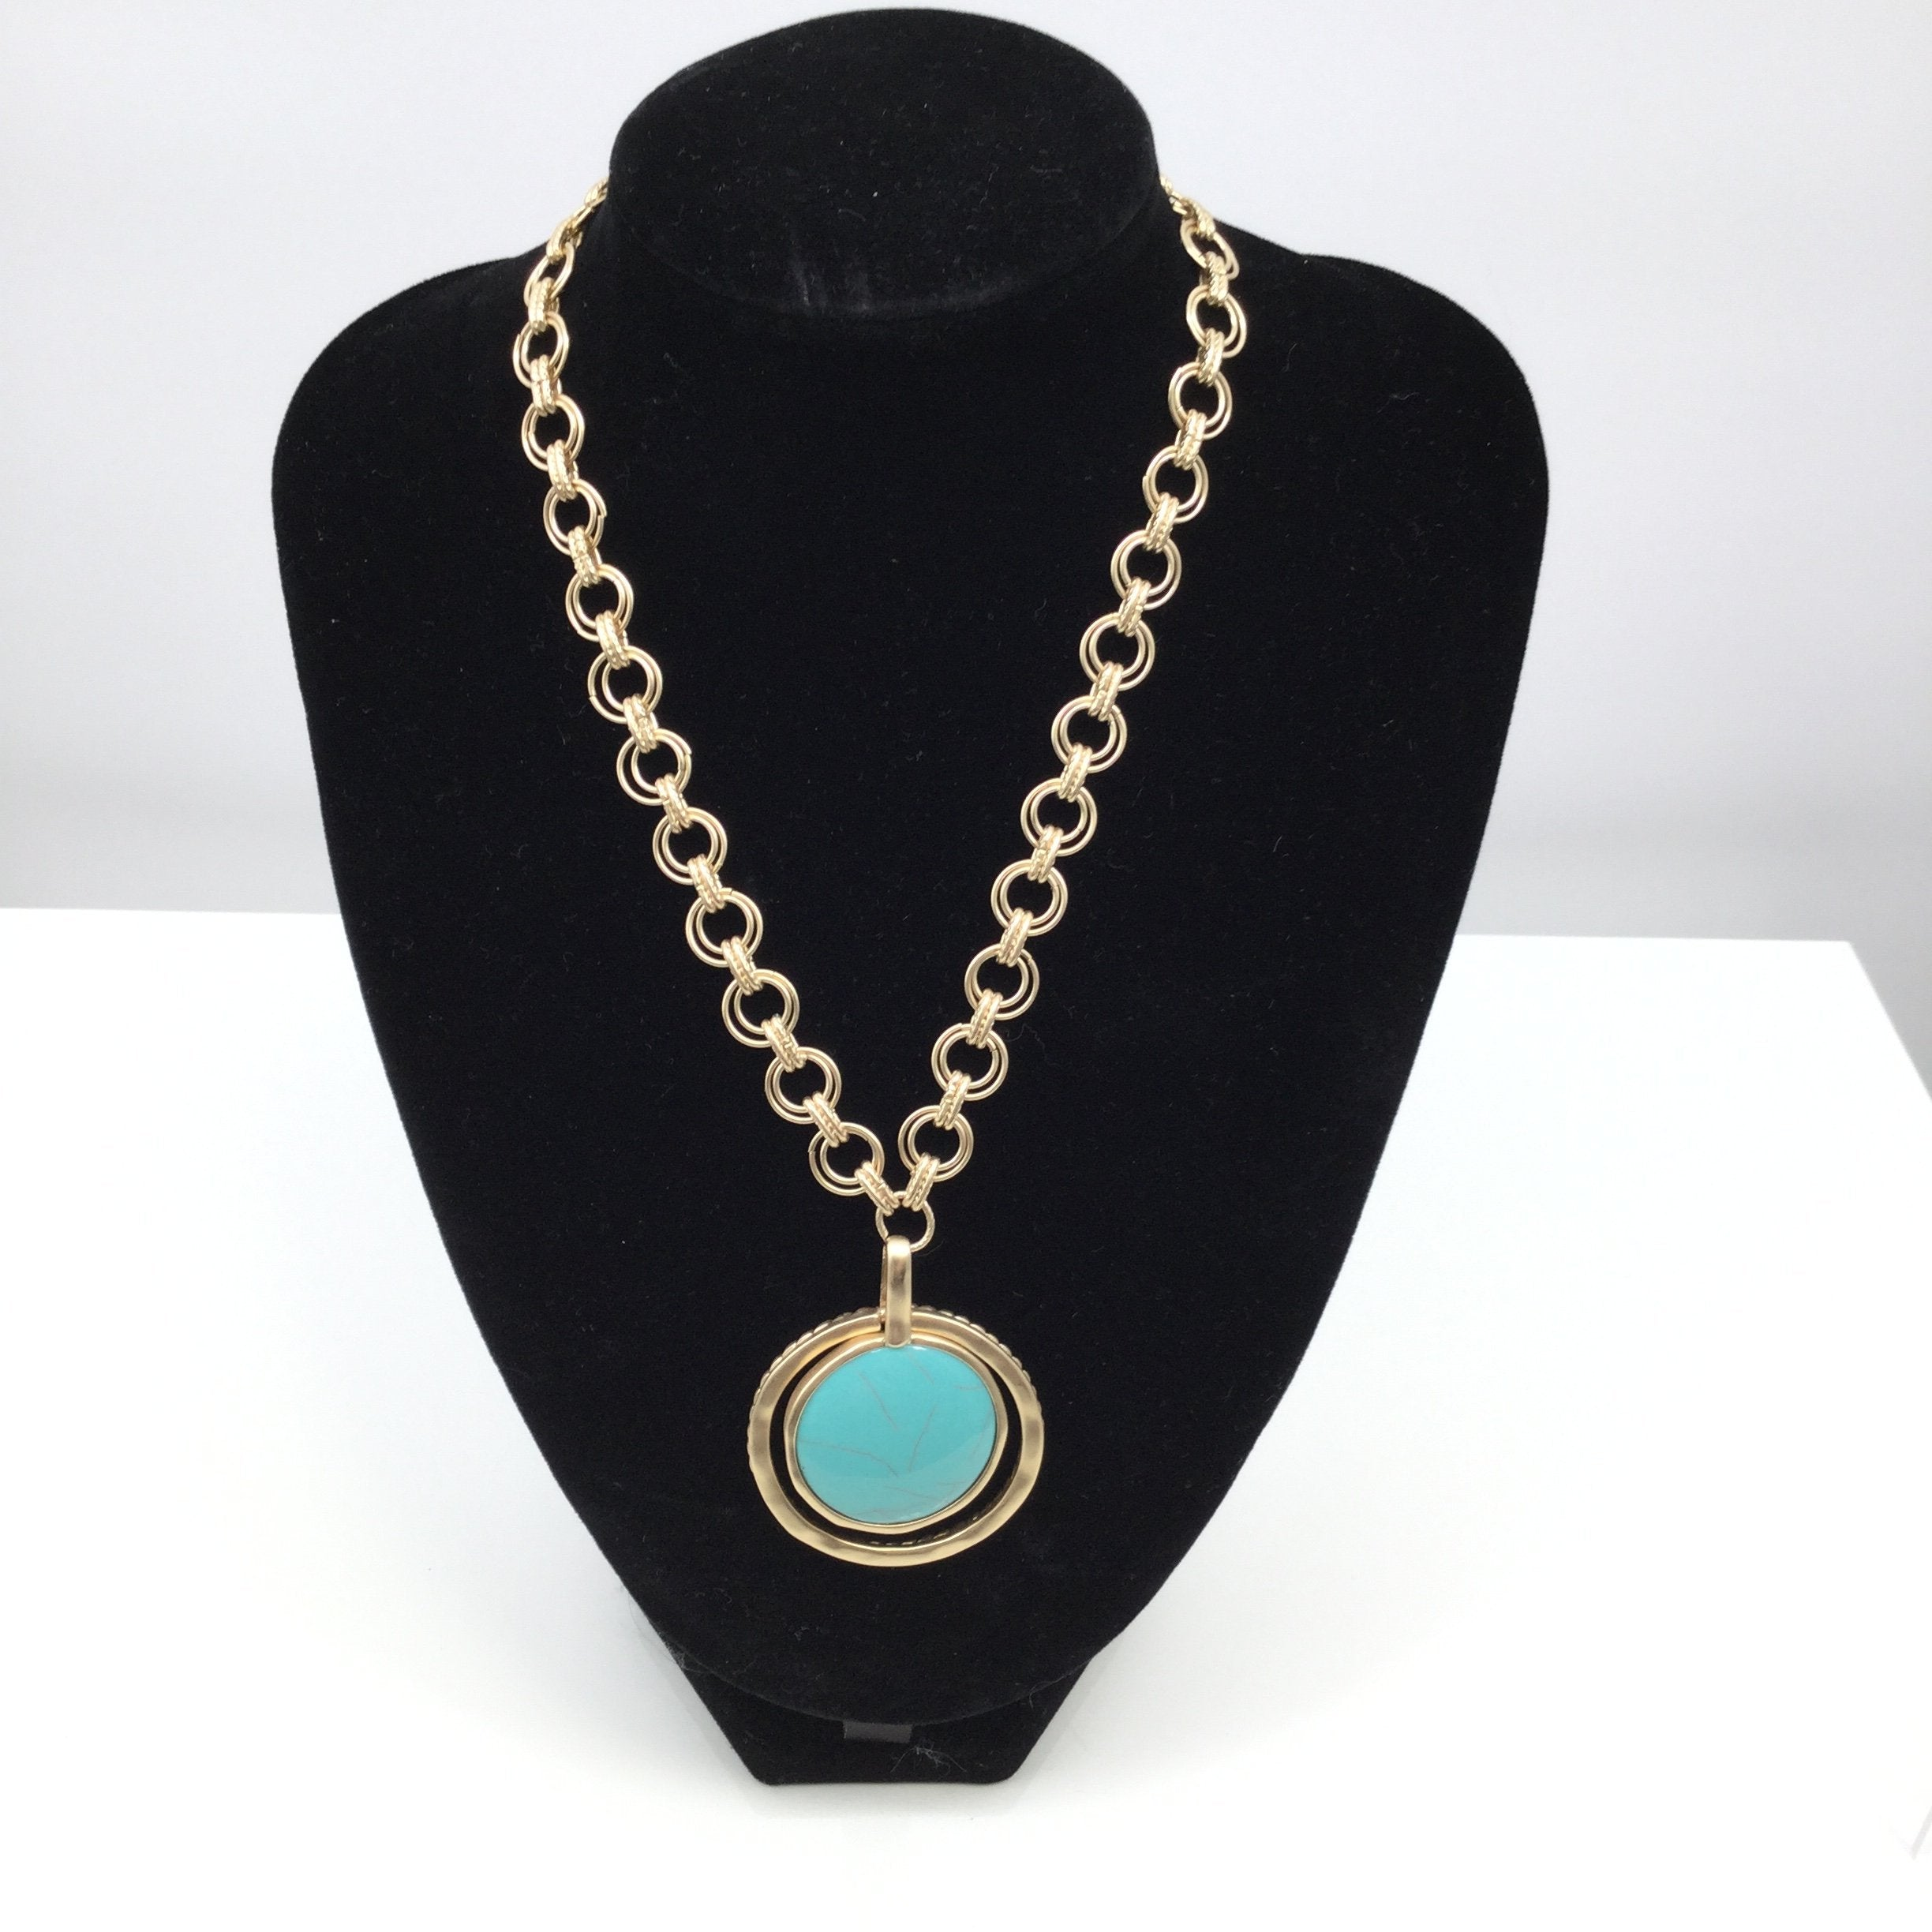 CHICOS TURQUOISE AND COIN NECKLACE - <P>TWO NECKLACES IN 1!,  ONE SIDE IS A TURQUOISE DISC AND THE OTHER A ROMAN COIN.,  GOLD HARDWARE.</P>